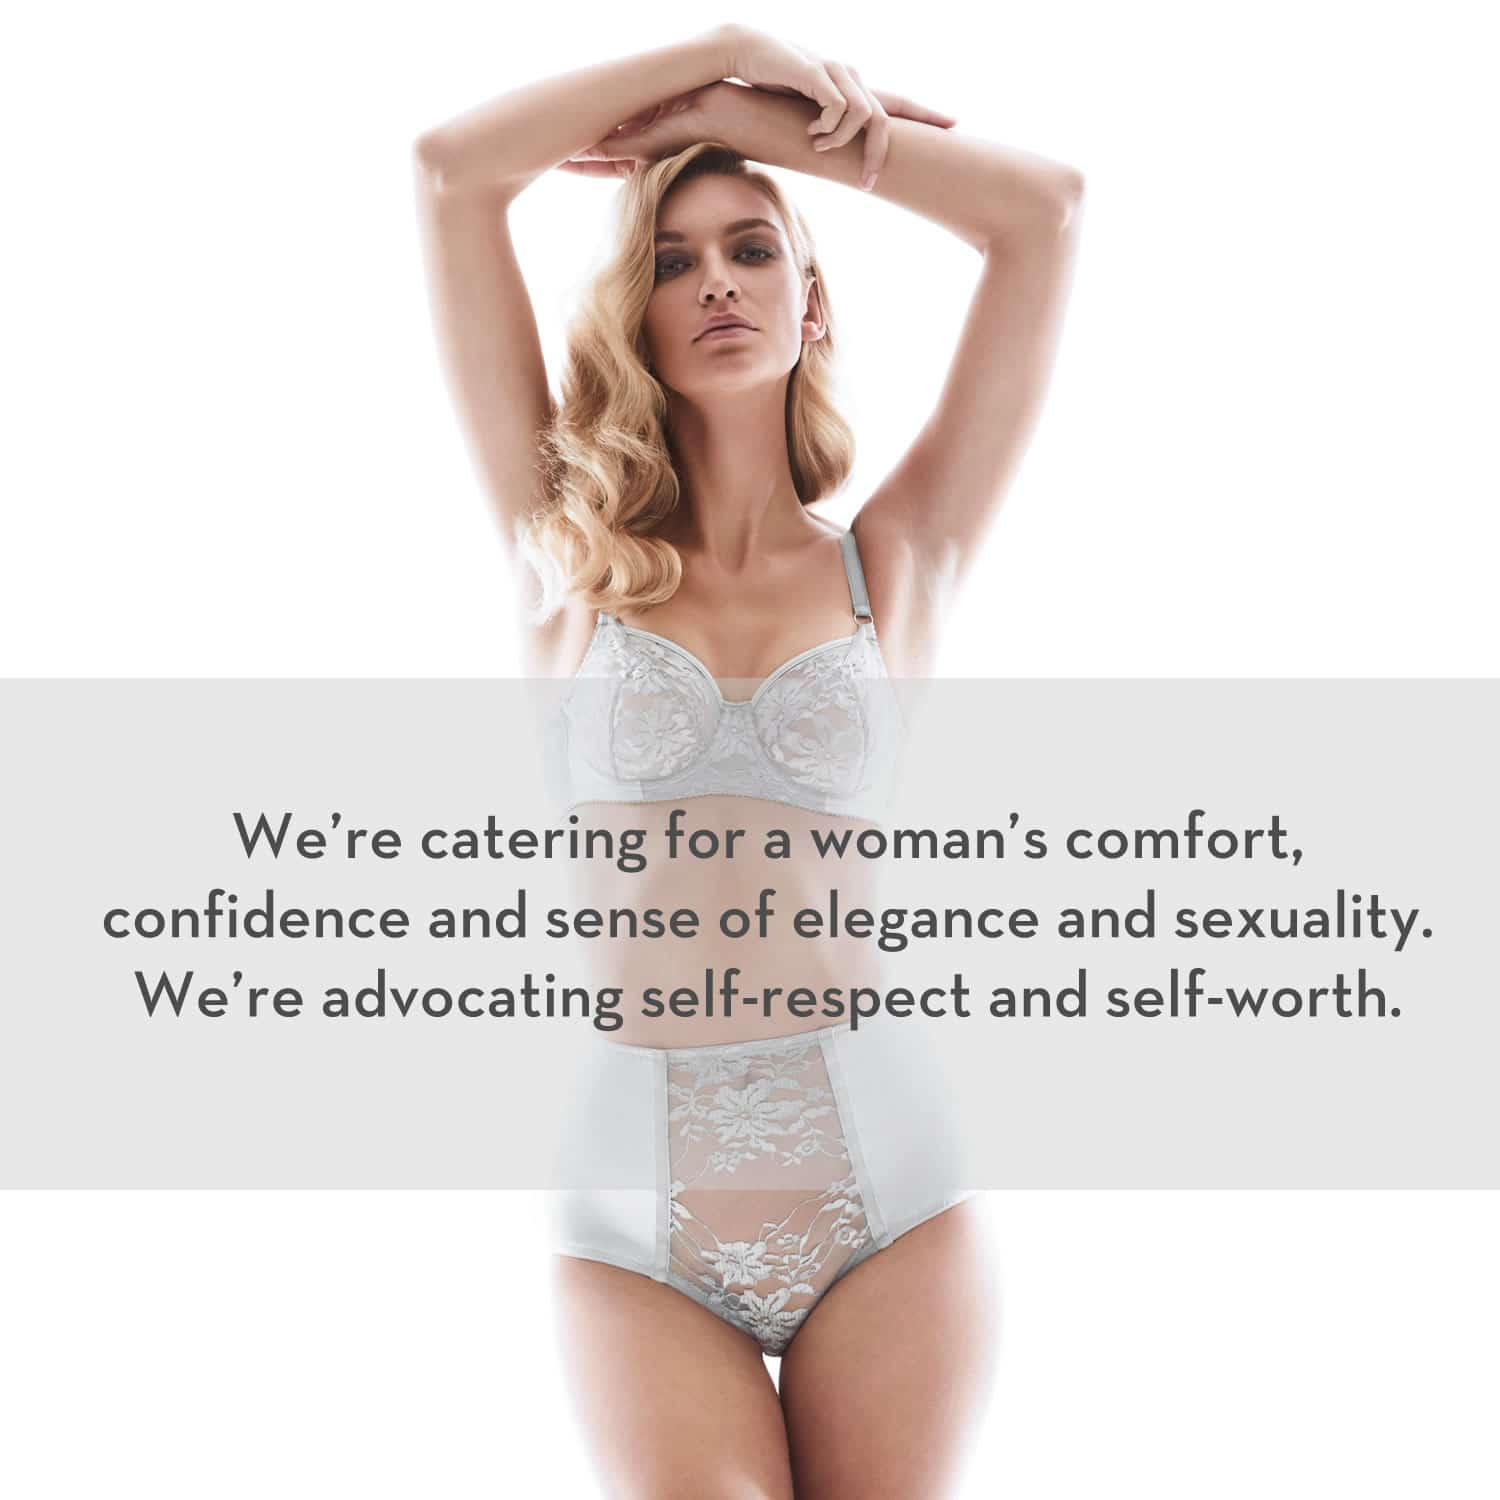 Empowered by Lingerie